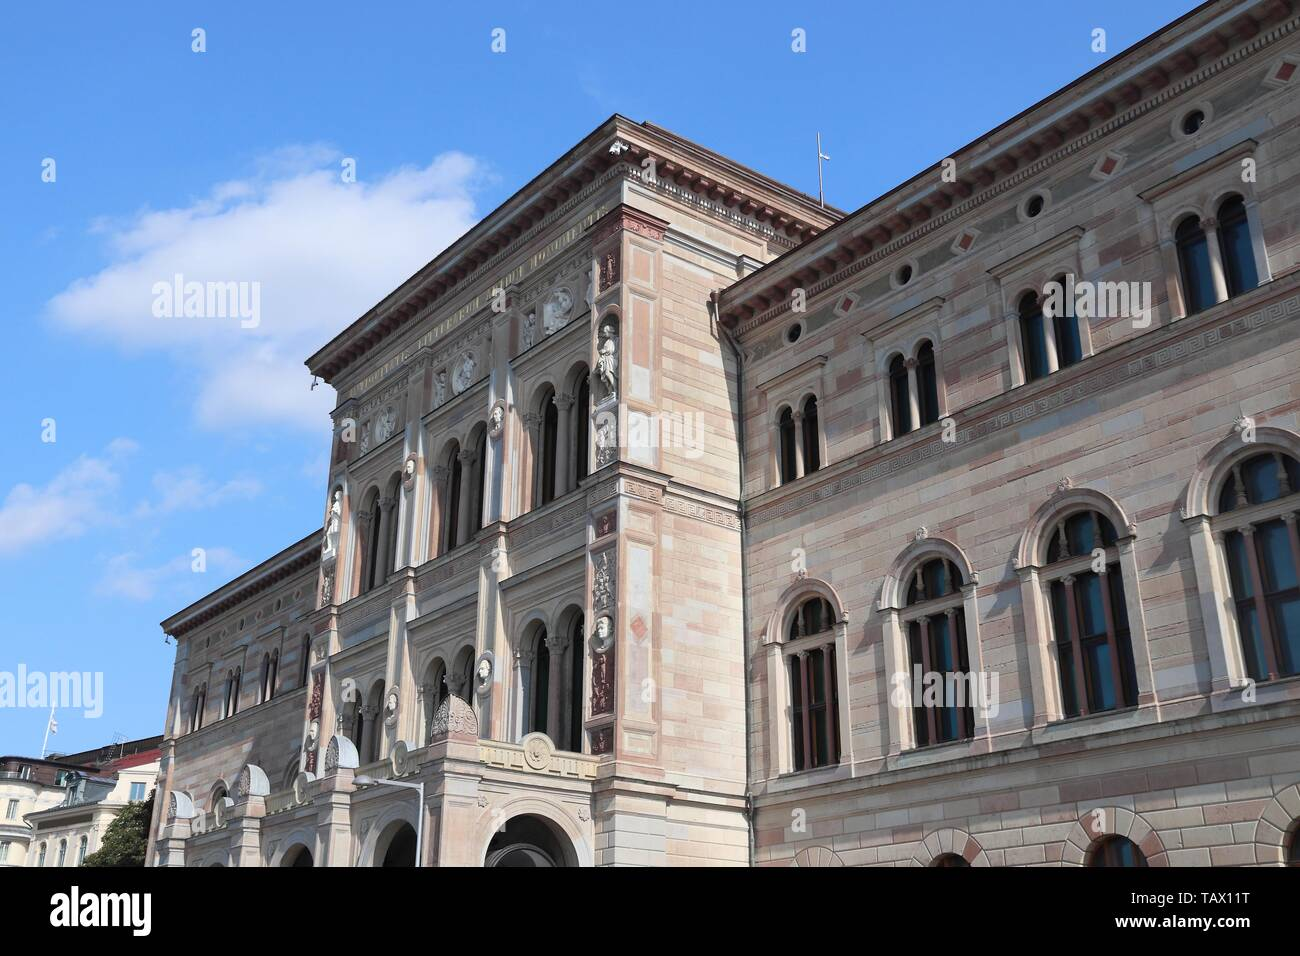 Swedish culture - National Museum building in Stockholm city, Sweden. - Stock Image